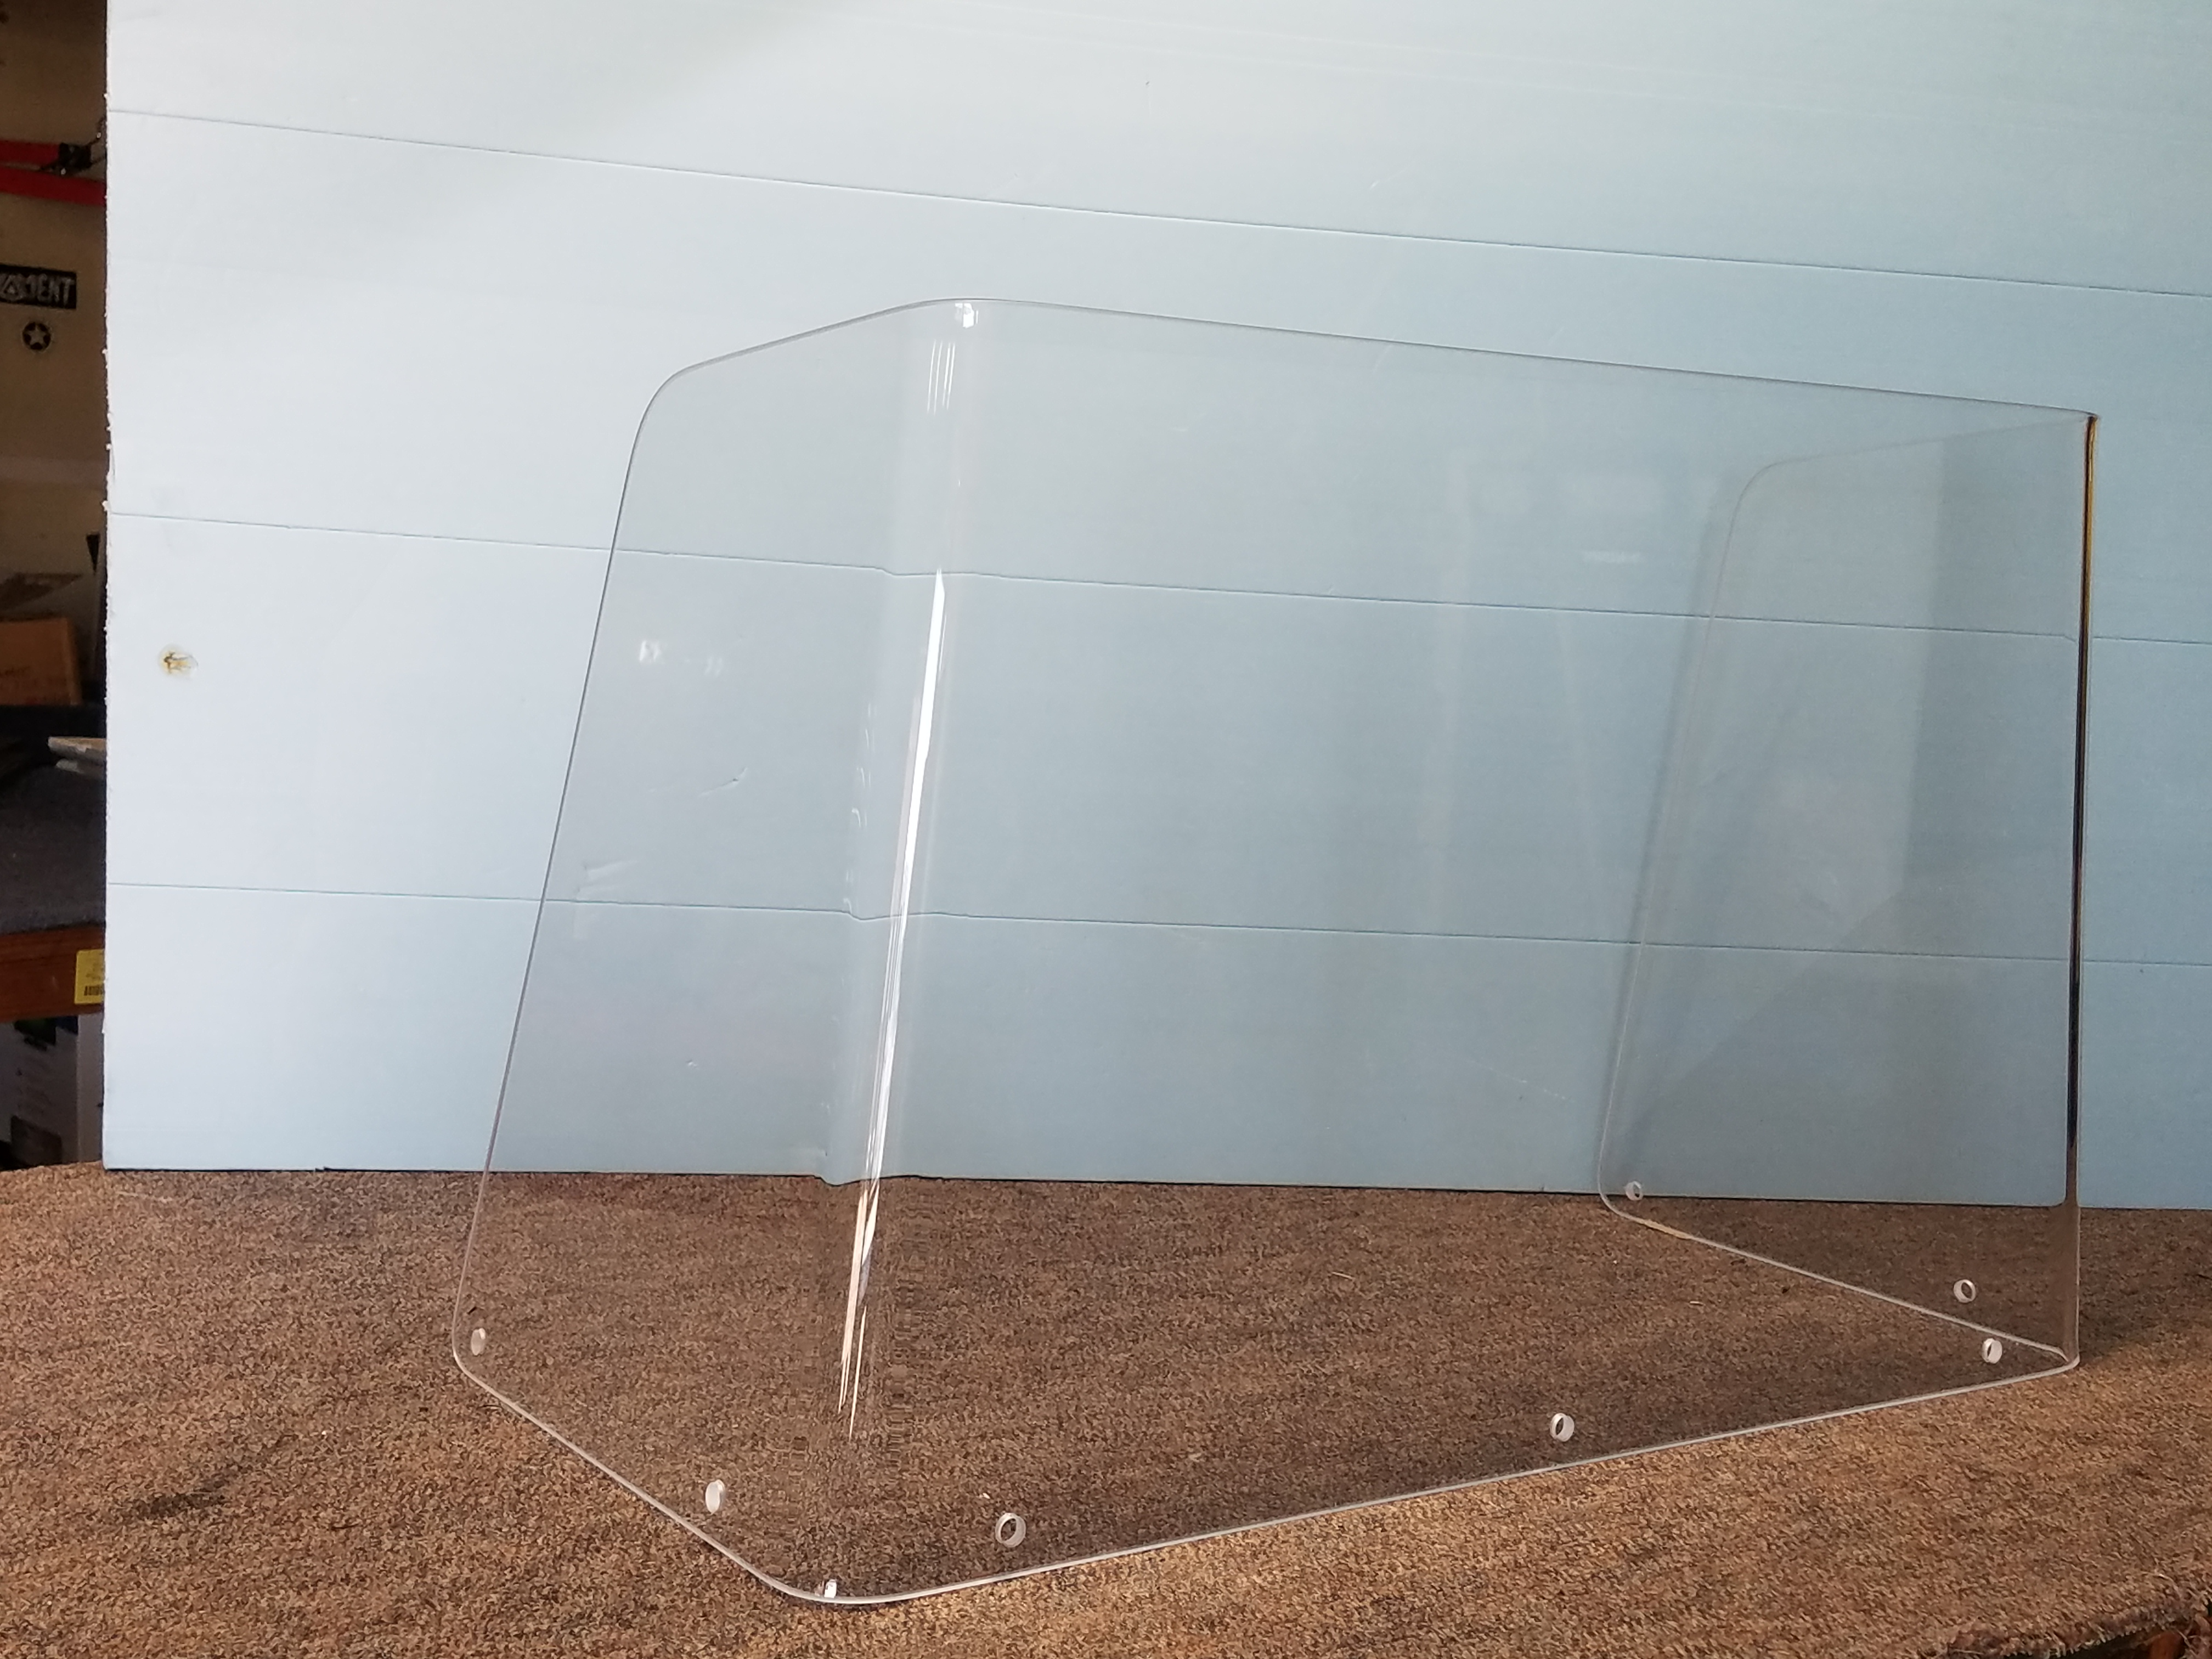 Acrylic Windscreens - Replacement Boat Windshields and Windscreens